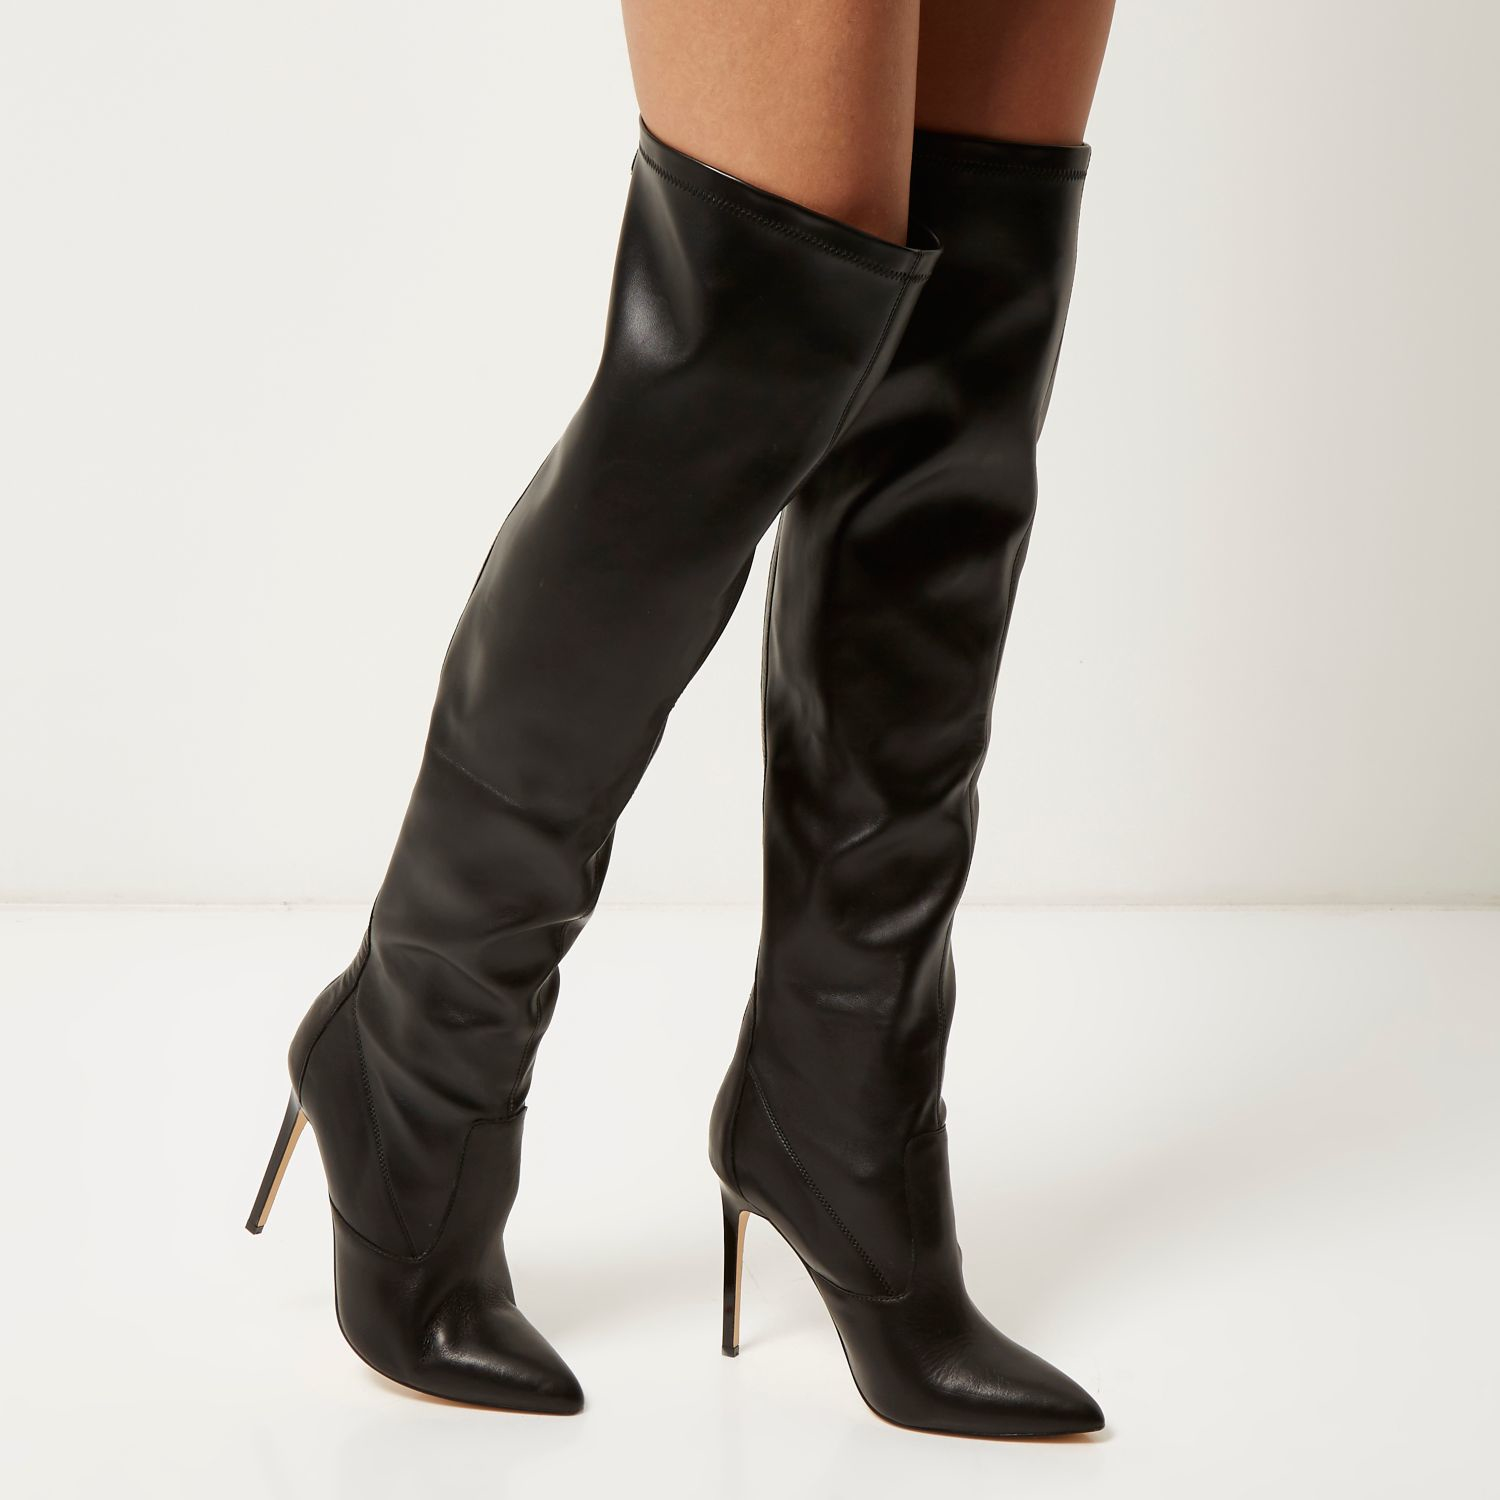 river island black the knee heeled boots in black lyst